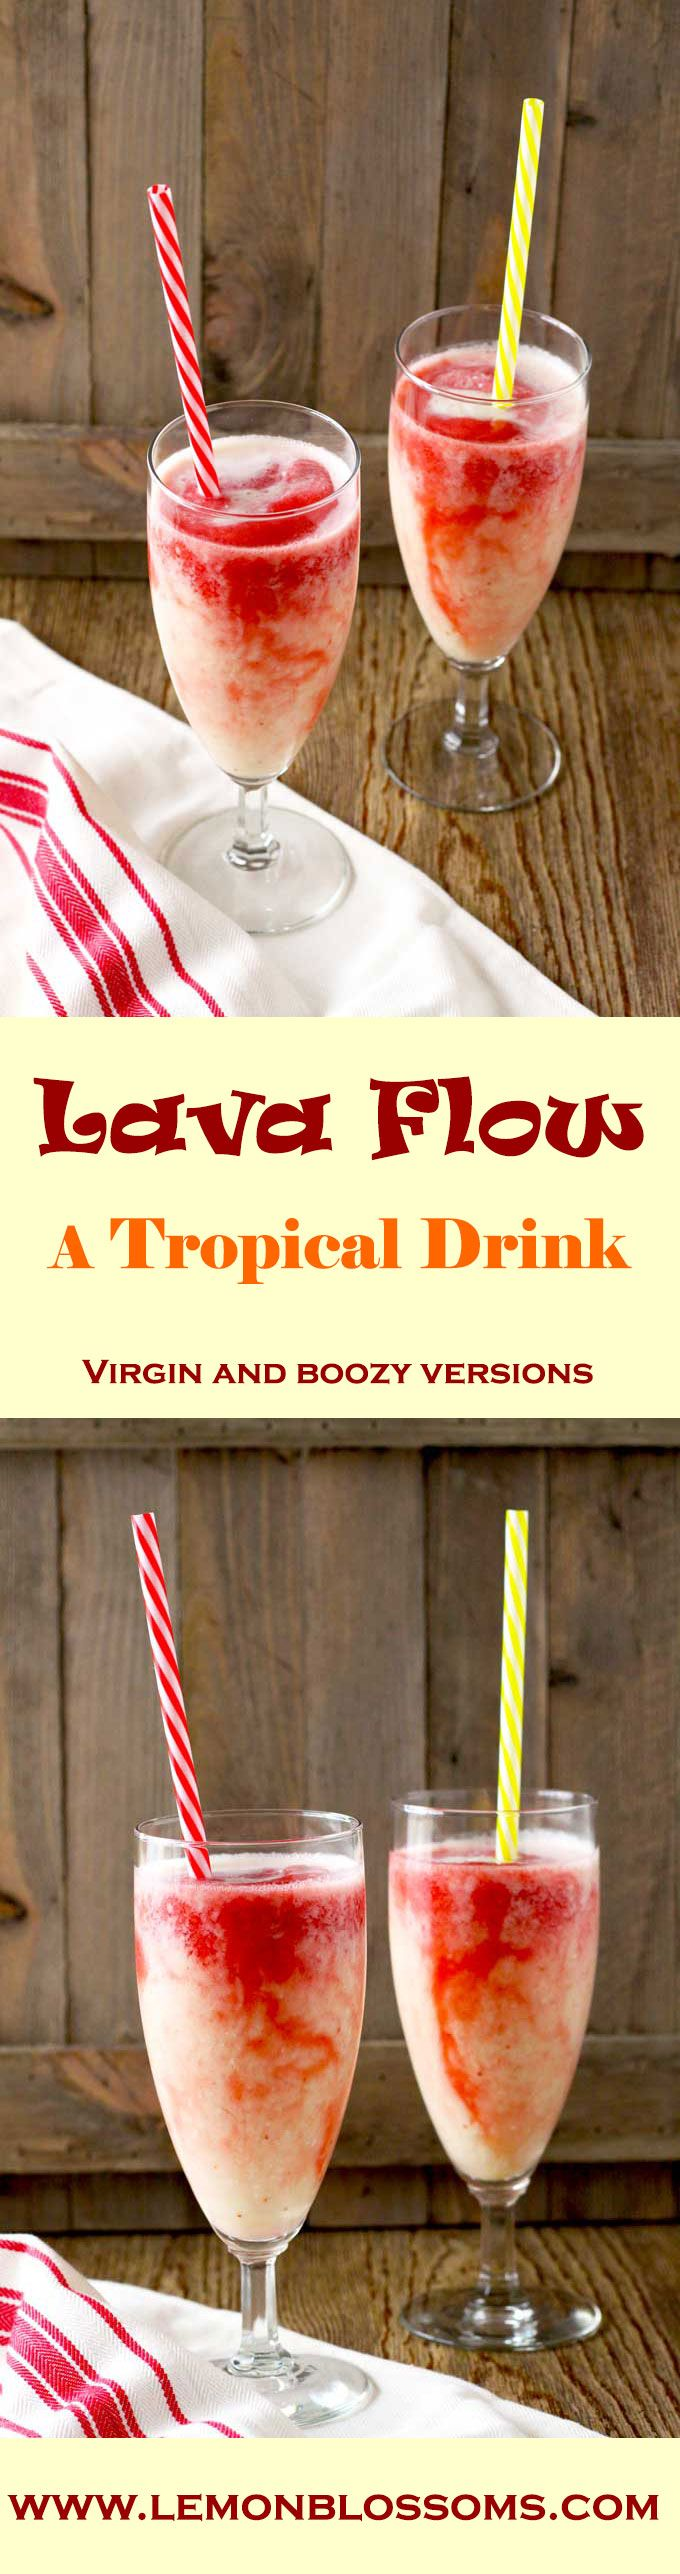 Lava Flow ~ a tropical drink that mixes pineapple, coconut and strawberries to create a sweet, delicious and refreshing drink. One sip will transport you to a beautiful tropical island. It's like paradise in a glass!!!  Virgin and non-virgin recipes provi